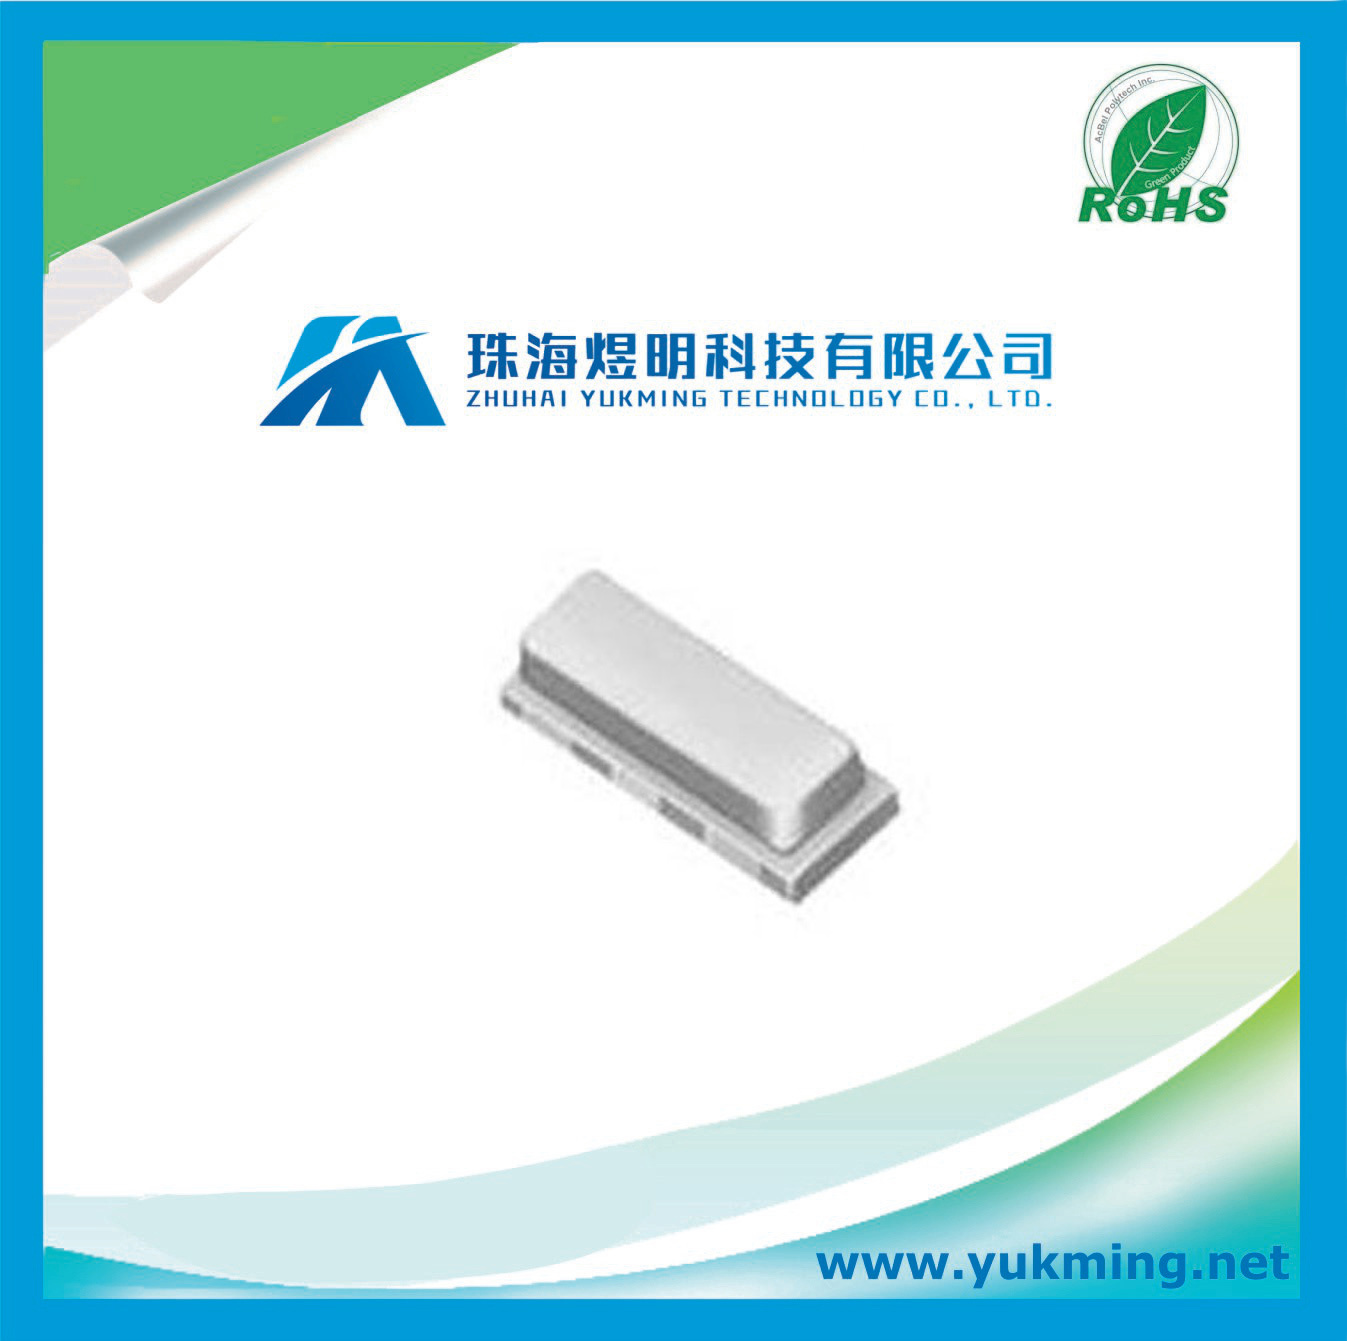 Ceramic Resonator Cstce8m00g55z-R0 of Electronic Component